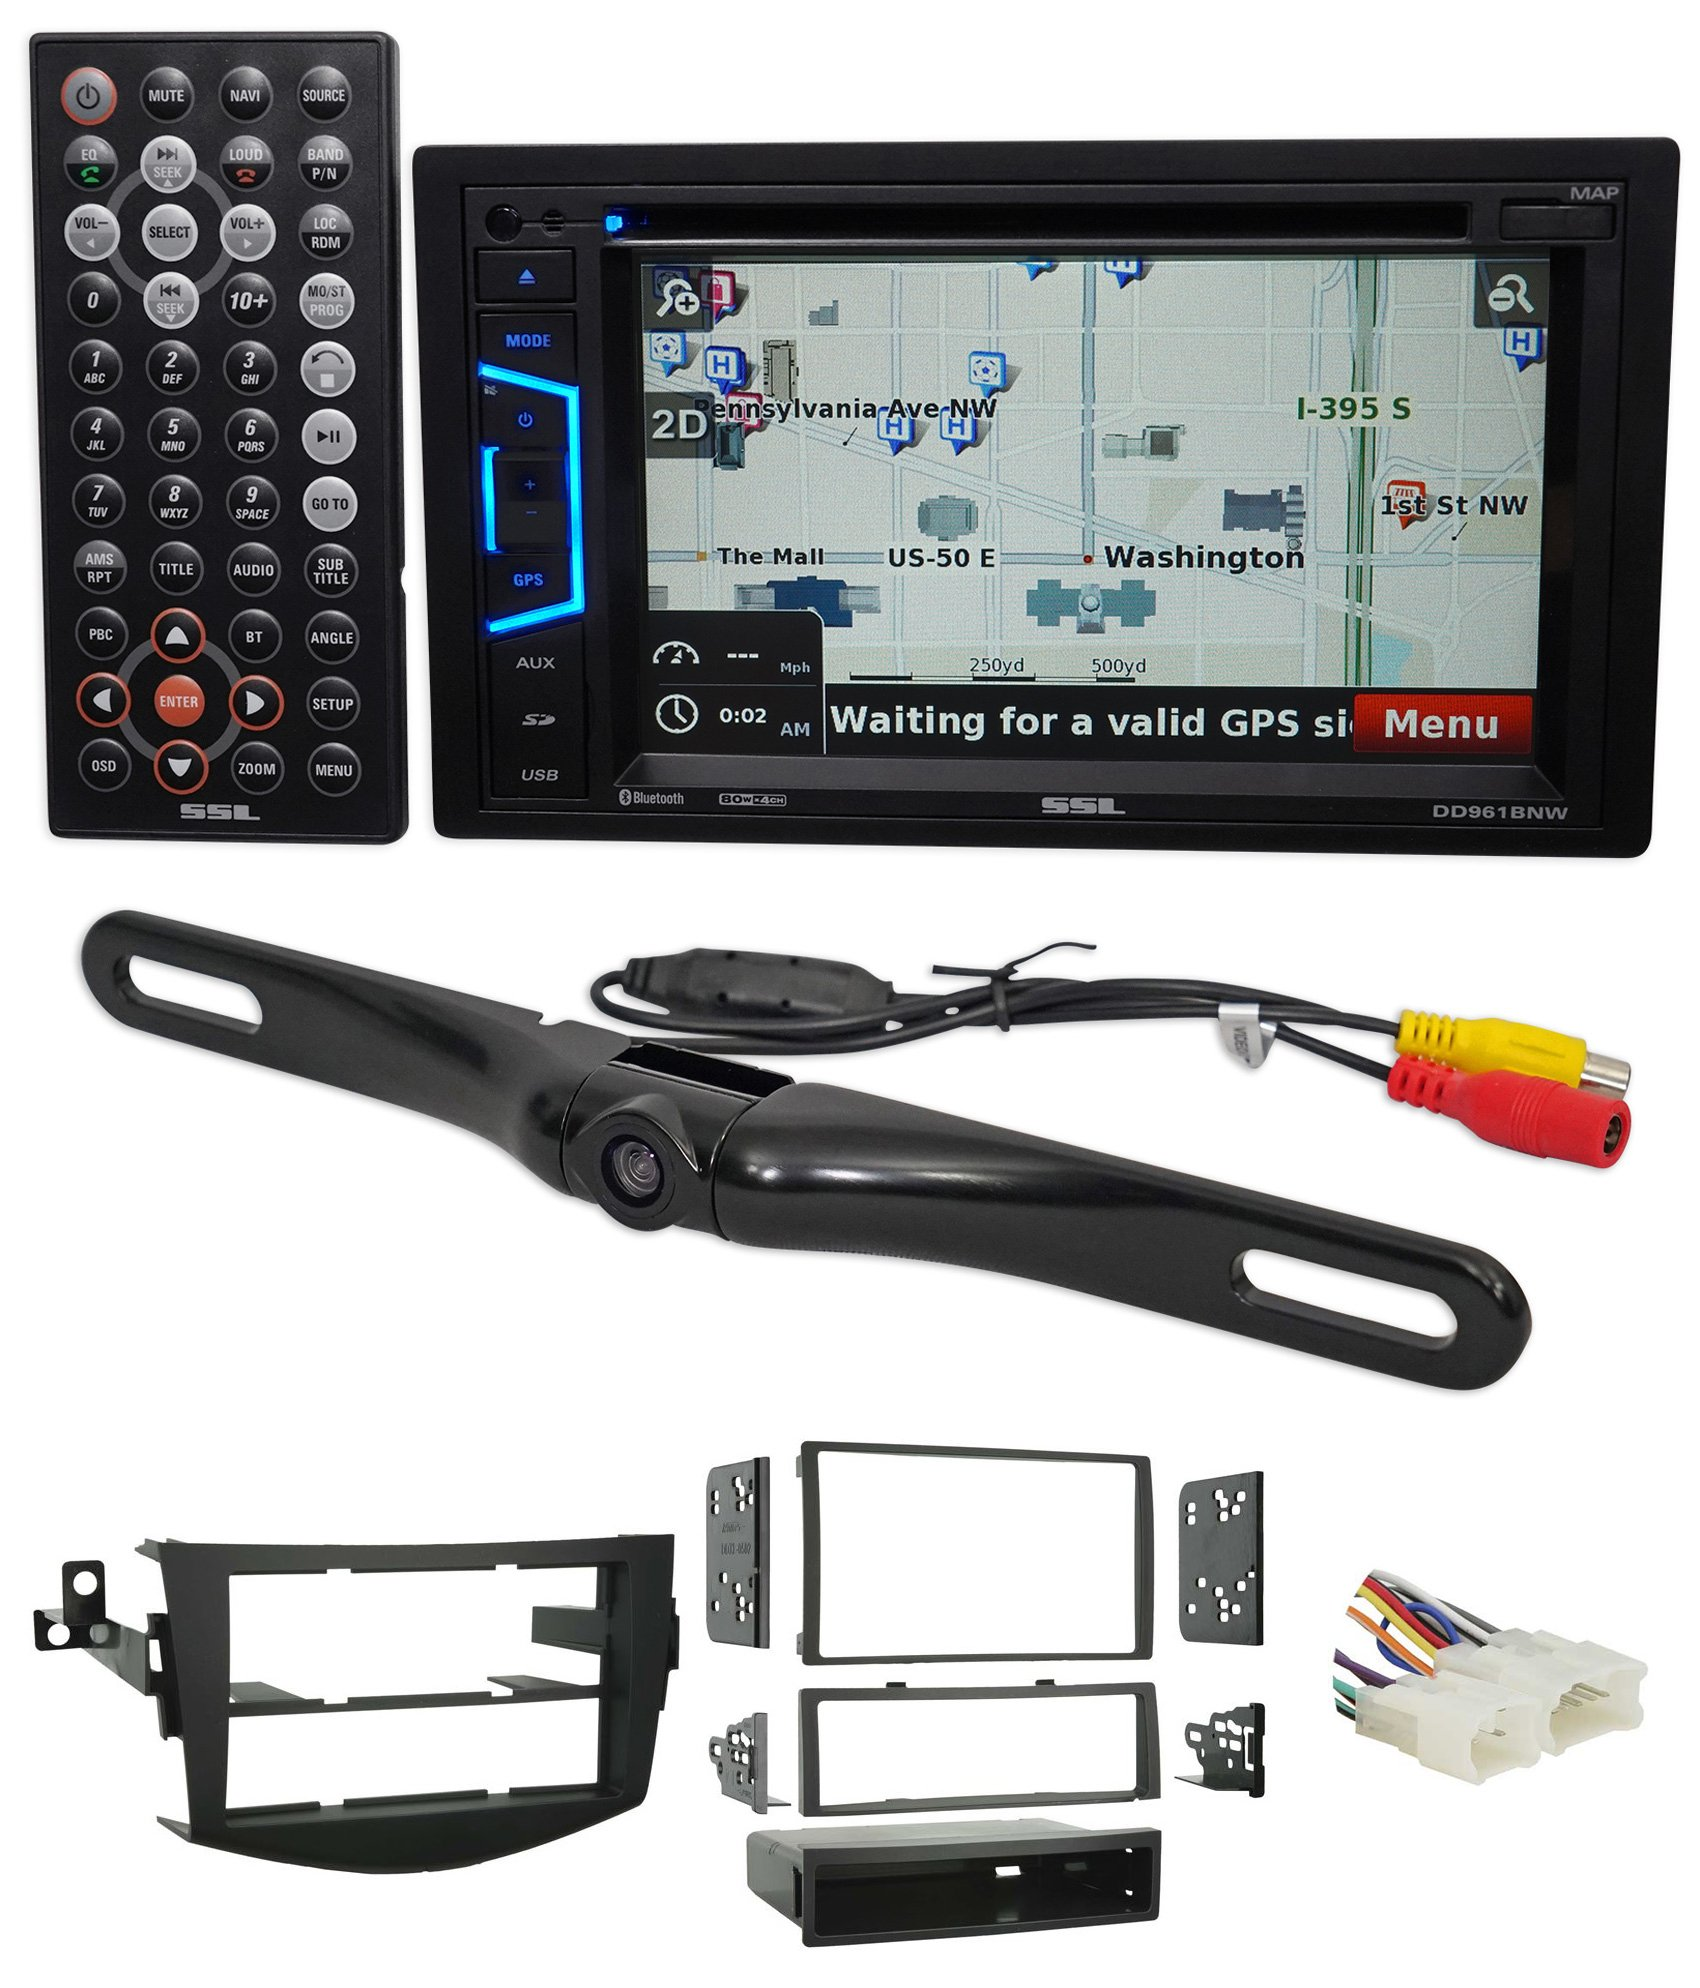 2006-2012 Toyota Rav4 Navigation/DVD/USB/SD/MP3 Receiver/Bluetooth+Camera by Sound Storm Laboratories